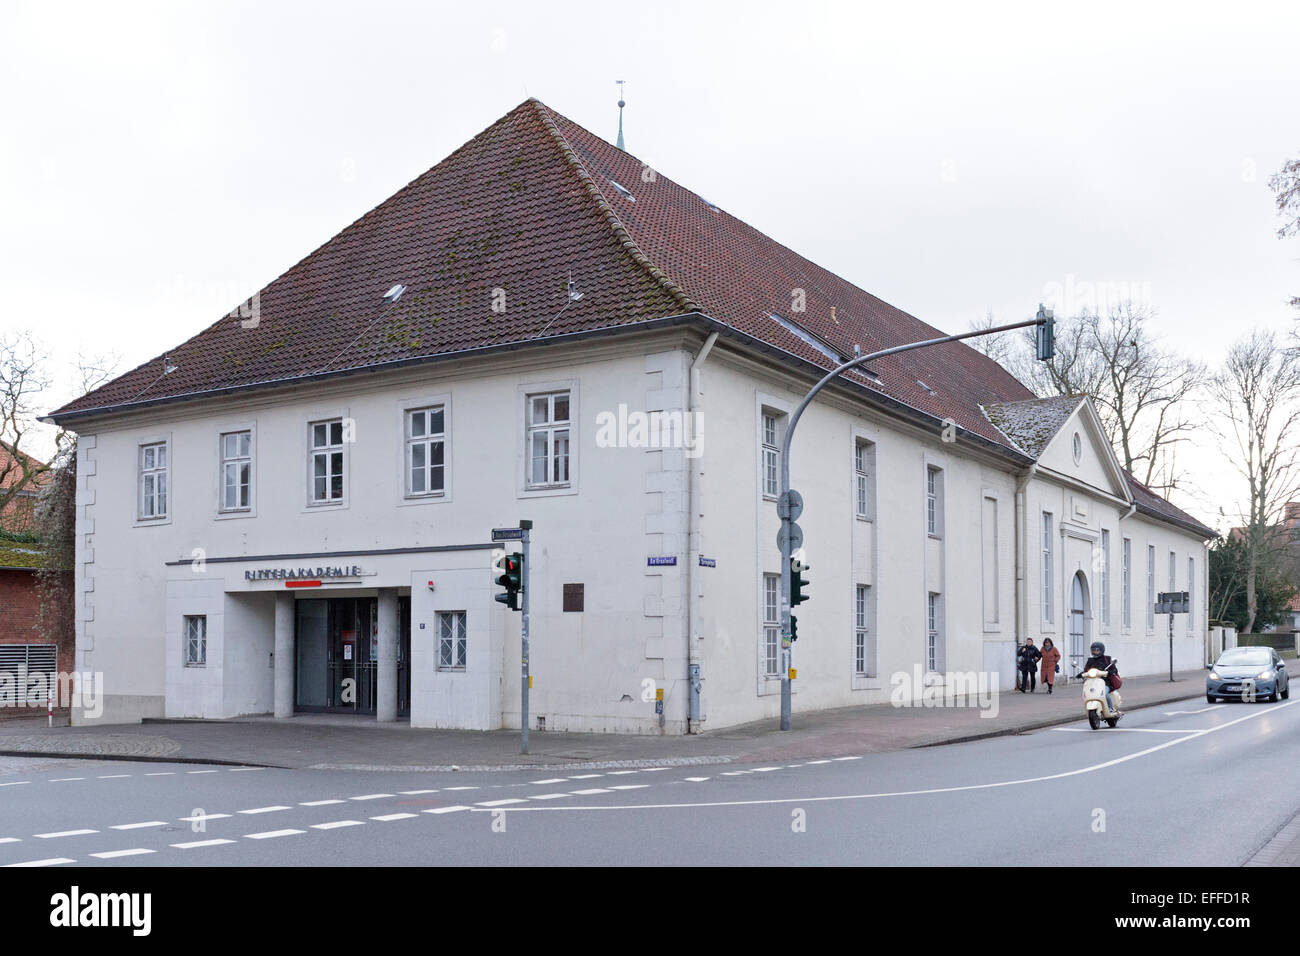 At the so called Ritterakademie in Lueneburg, Lower Saxony, Germany the trial against Oscar Groening will begin - Stock Image